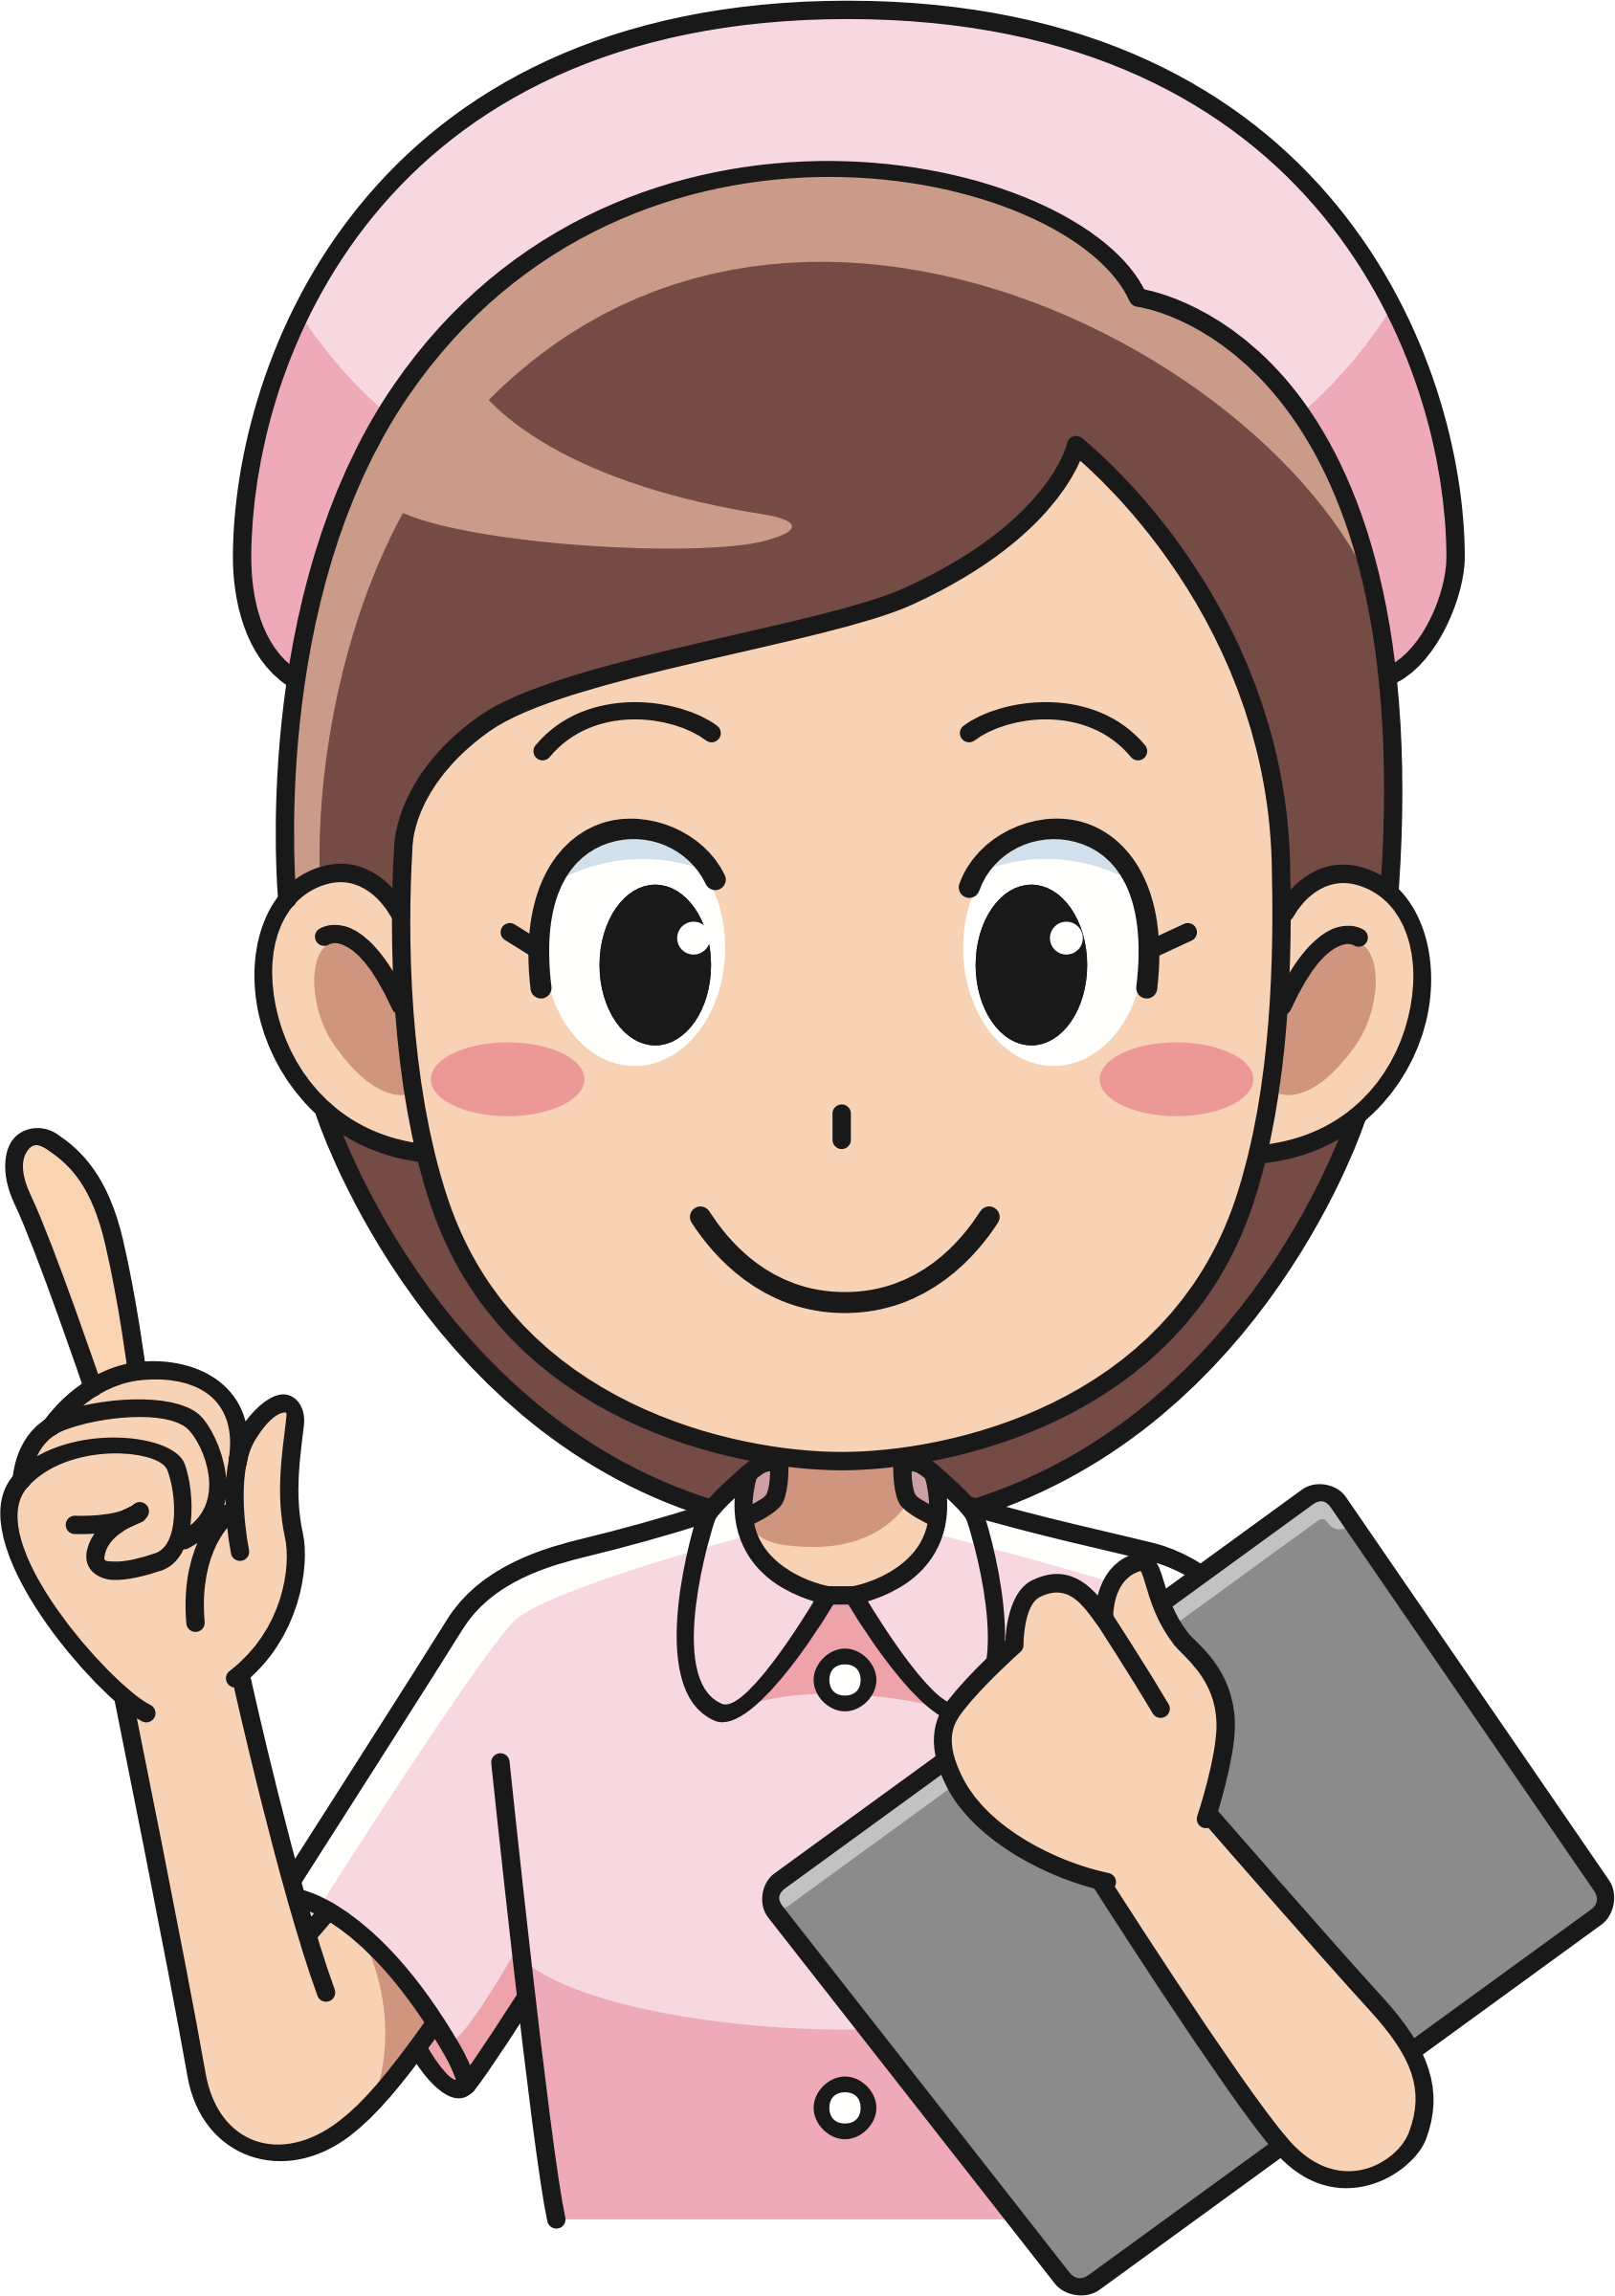 Cheerful big image png. Patient clipart nurse